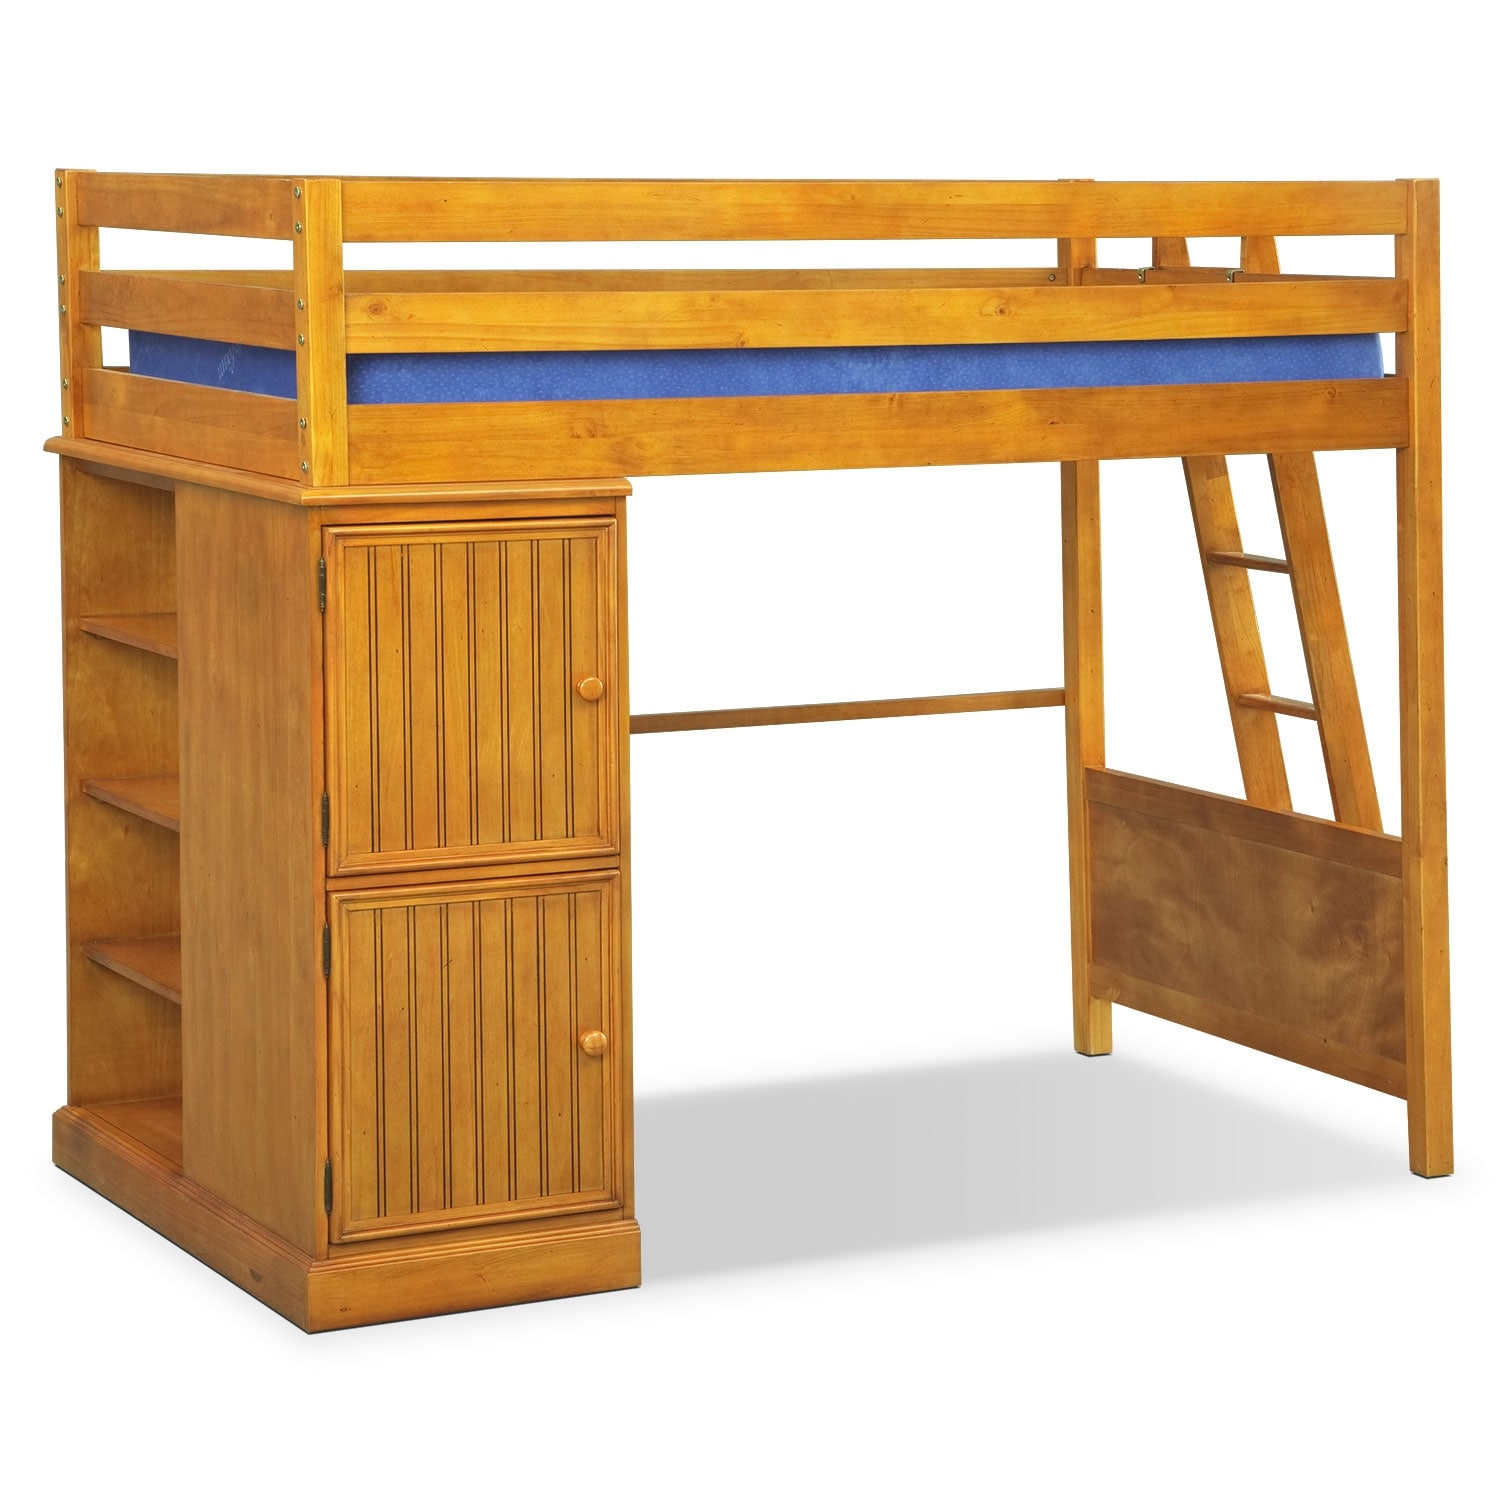 Kids Furniture - Colorworks Loft Bed - Honey Pine